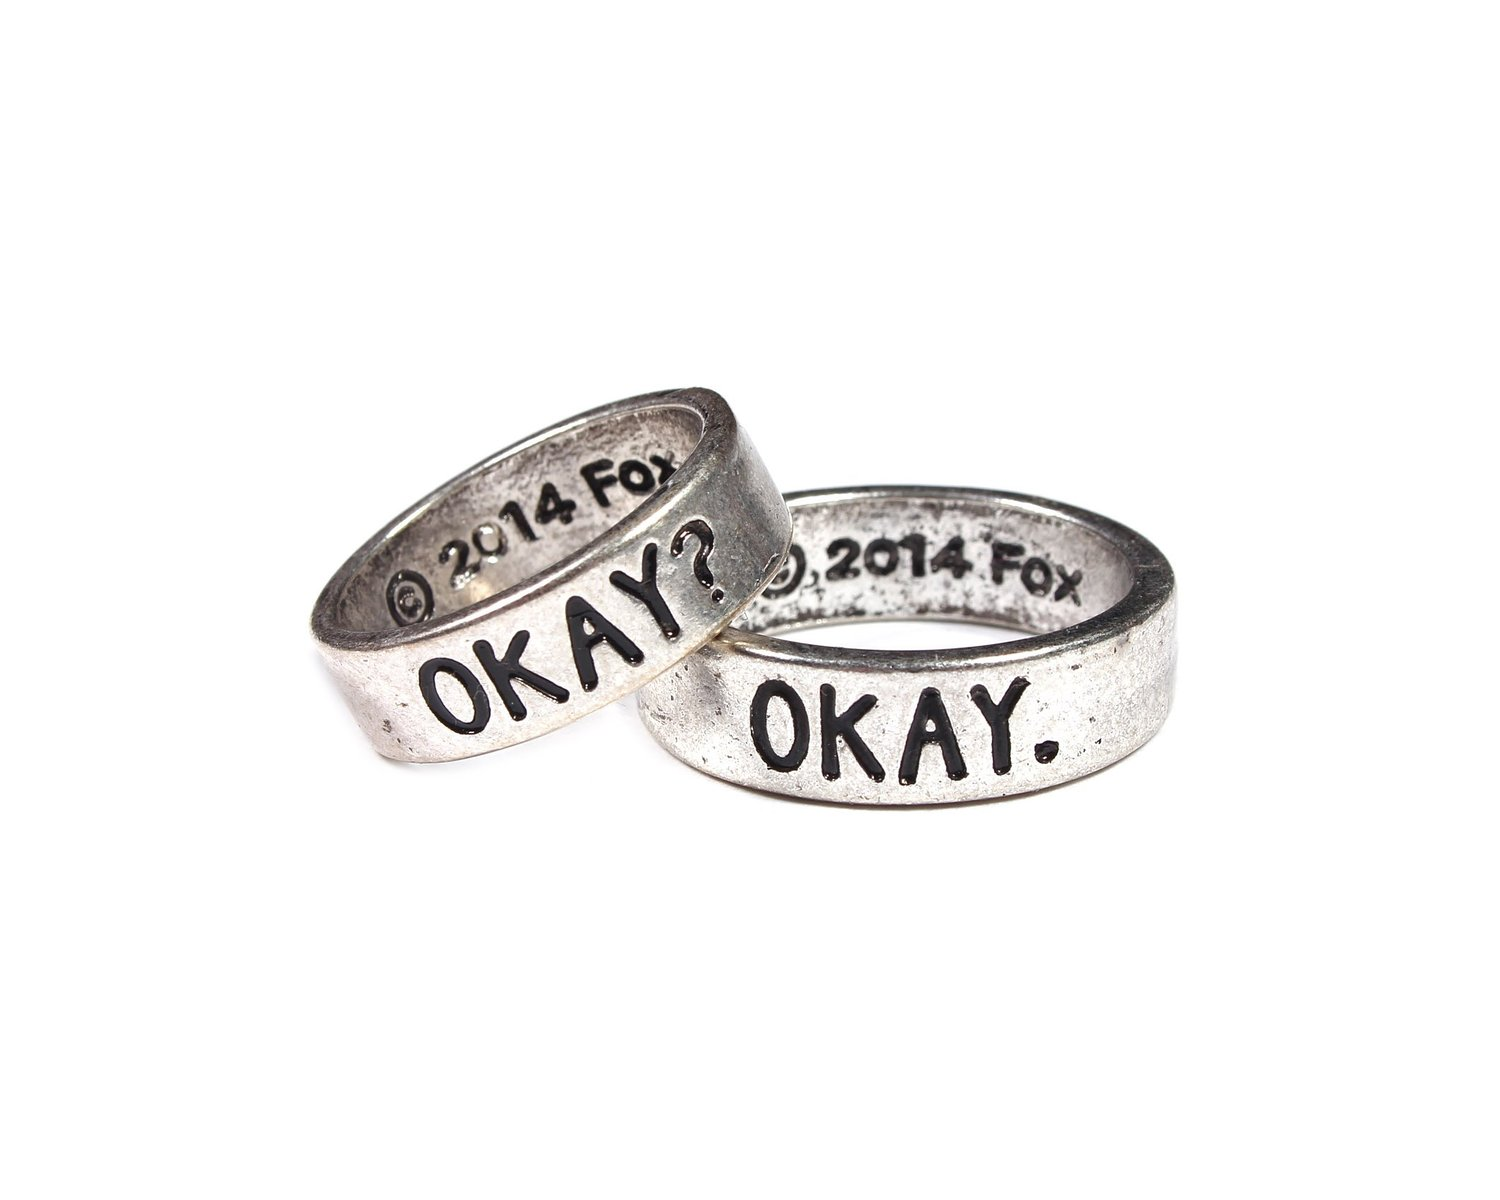 Amazon.com: the fault in our stars okay? okay his & hers ring set: jewelry